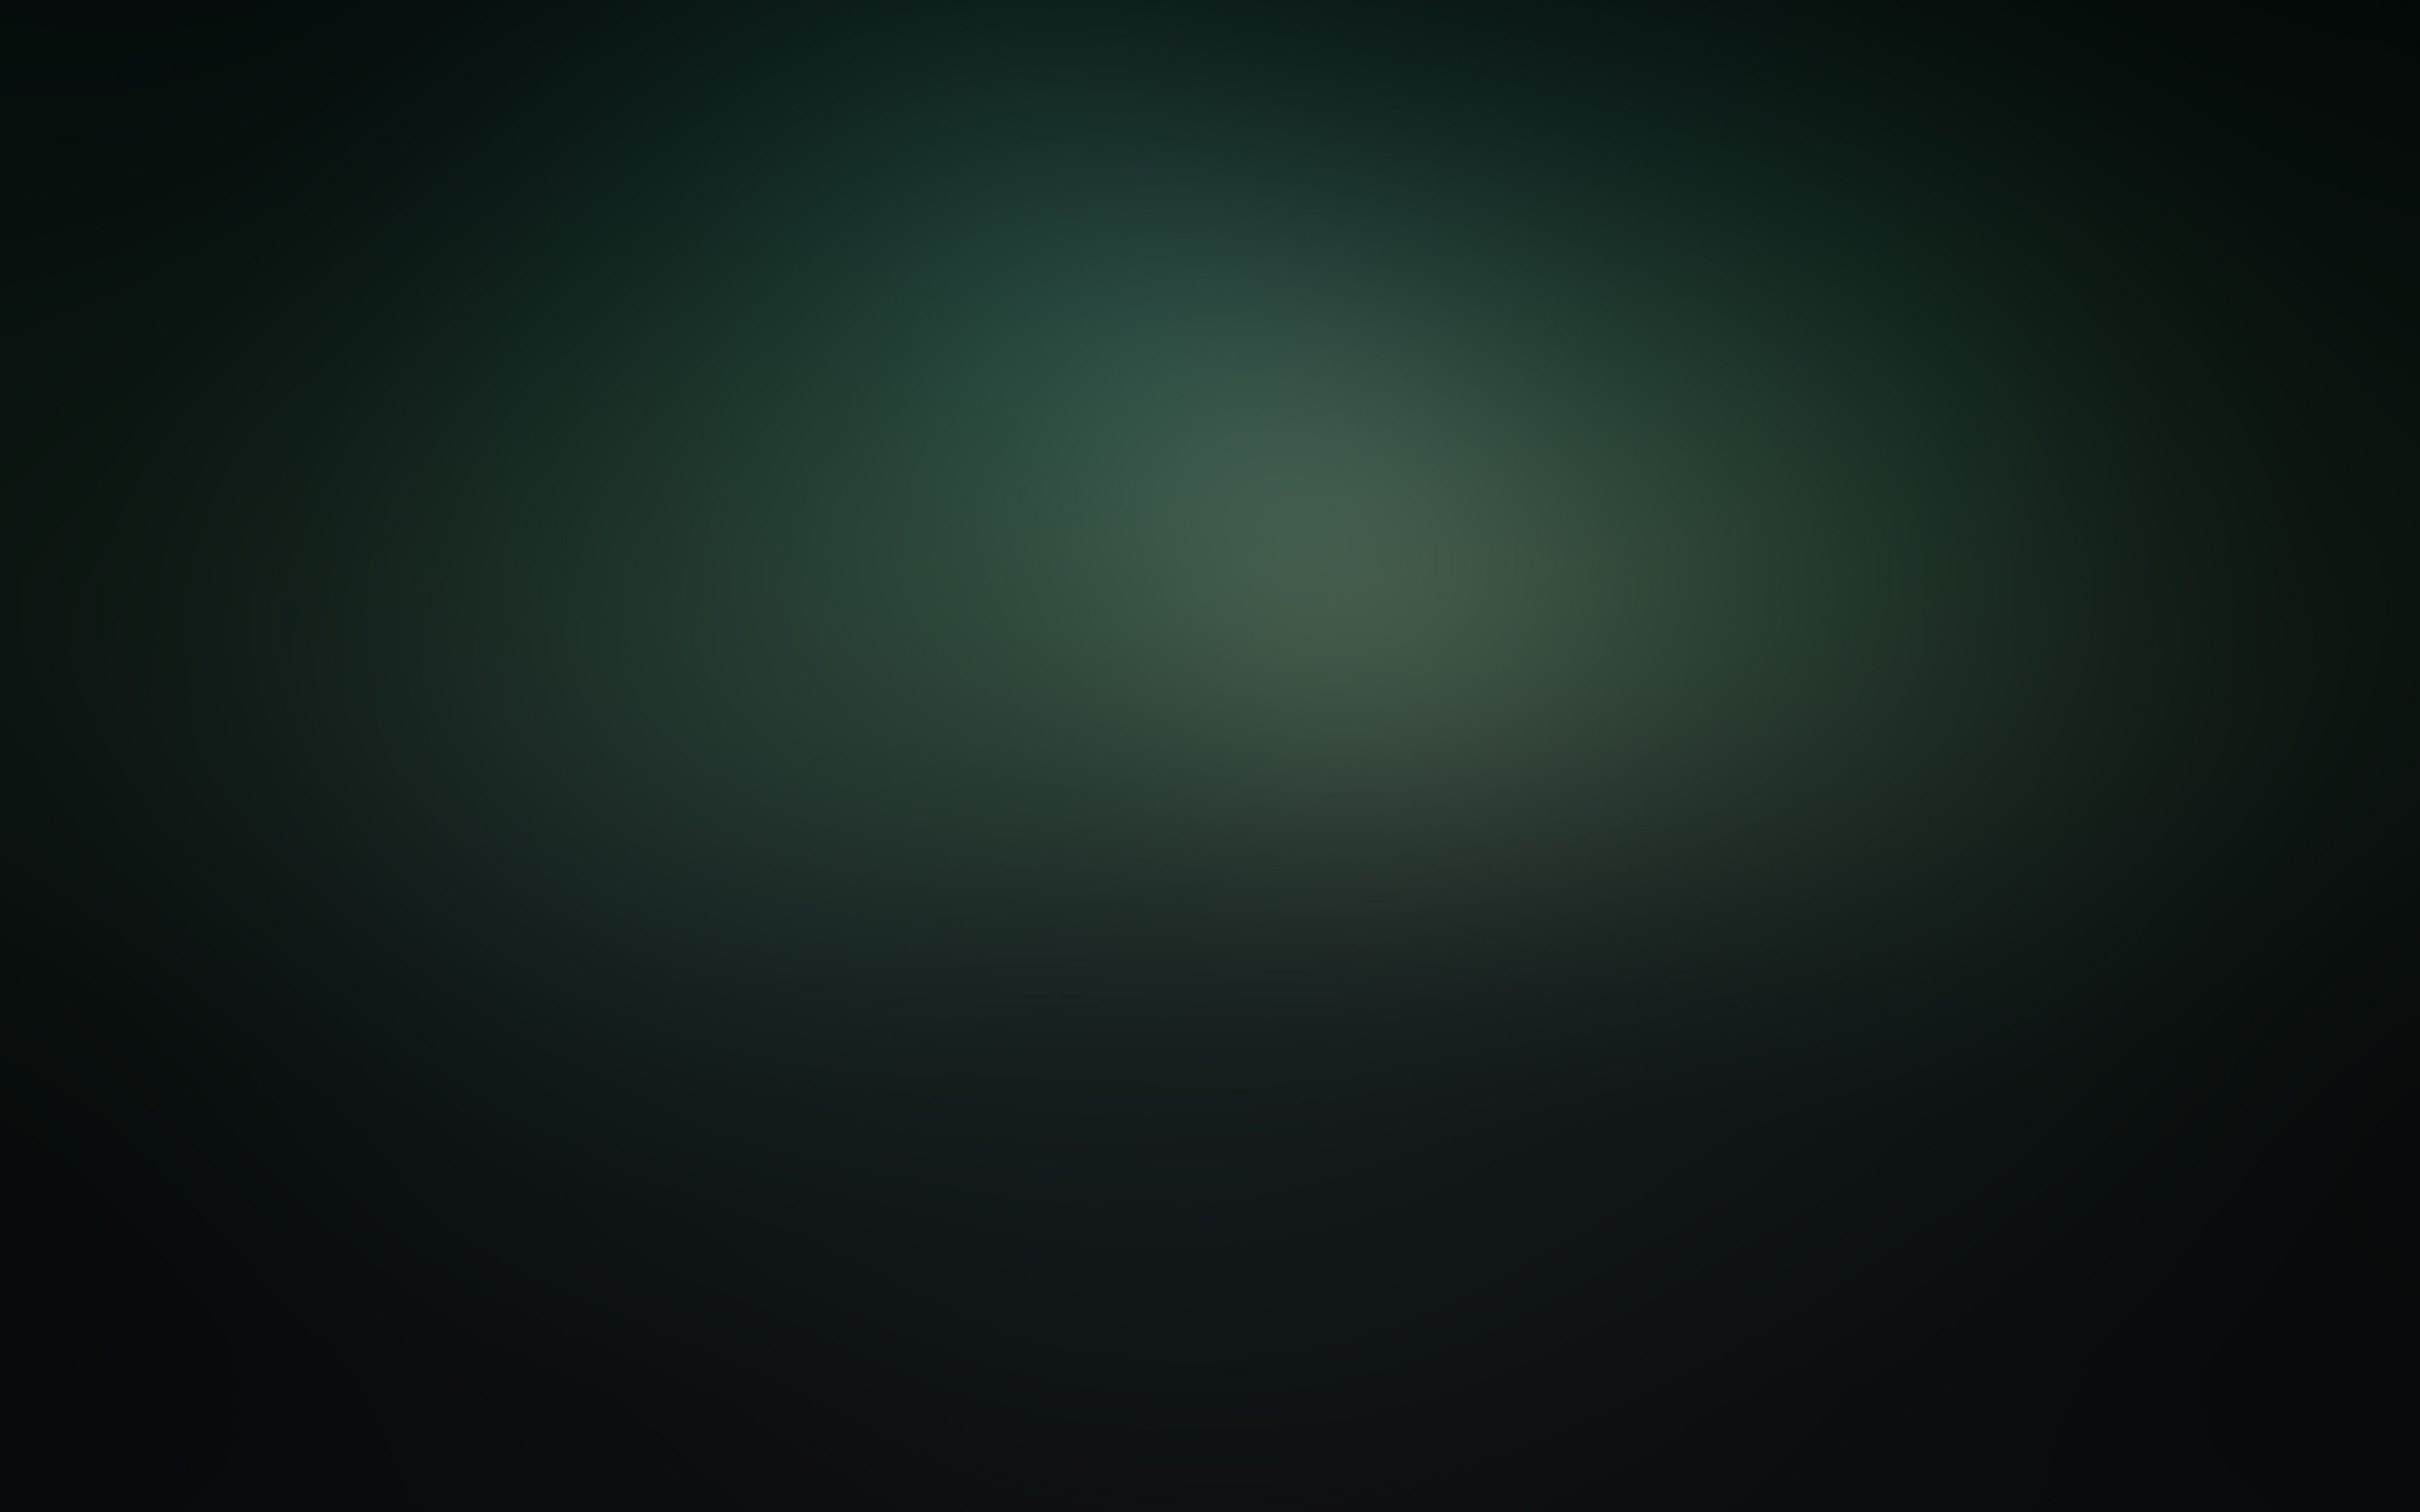 Midnight Green Wallpapers Top Free Midnight Green Backgrounds Wallpaperaccess